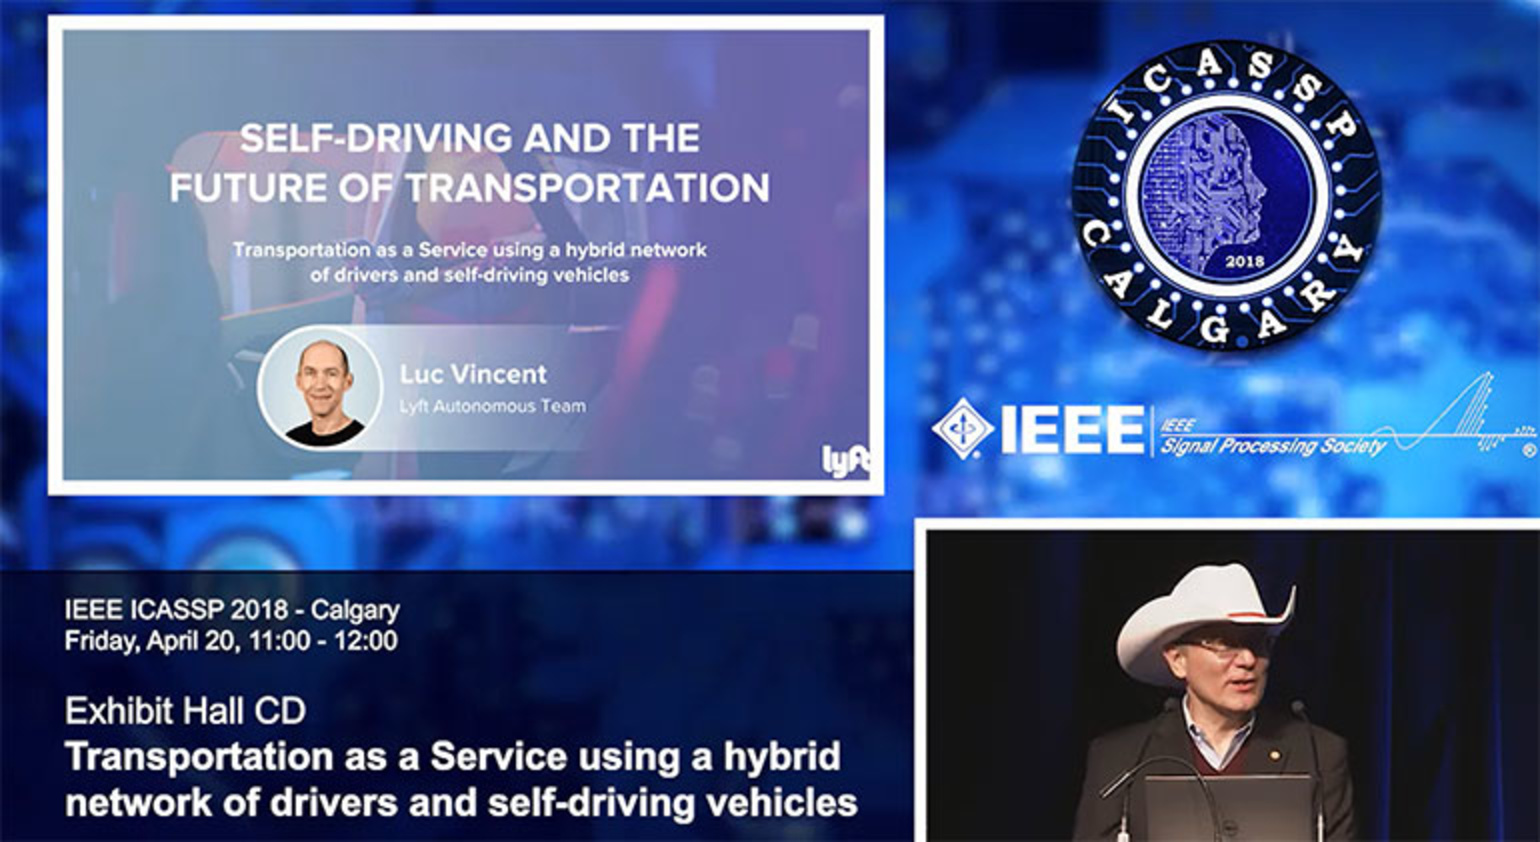 Plenary 4 – Transportation as a Service Using a Hybrid Network of Drivers and Self-driving Vehicles